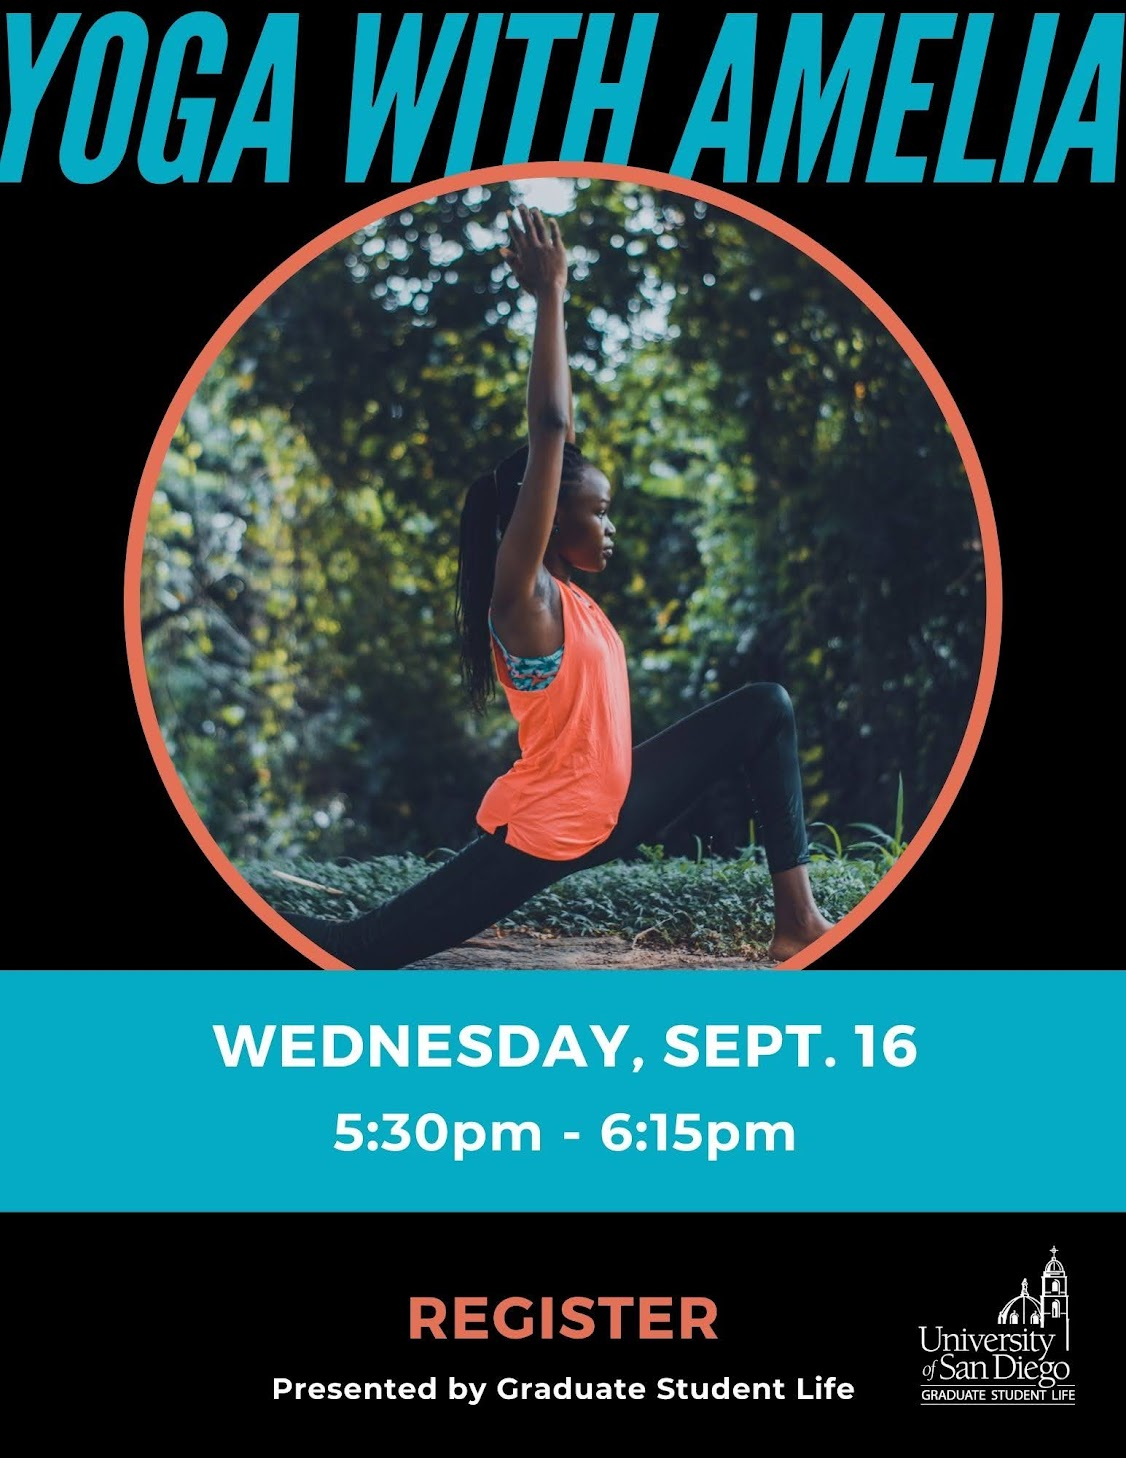 Yoga with Amelia, Wednesday, September 16 from 5:30-6:15pm. Black poster with neon orange and blue text with a woman doing yoga in a neon orange shirt